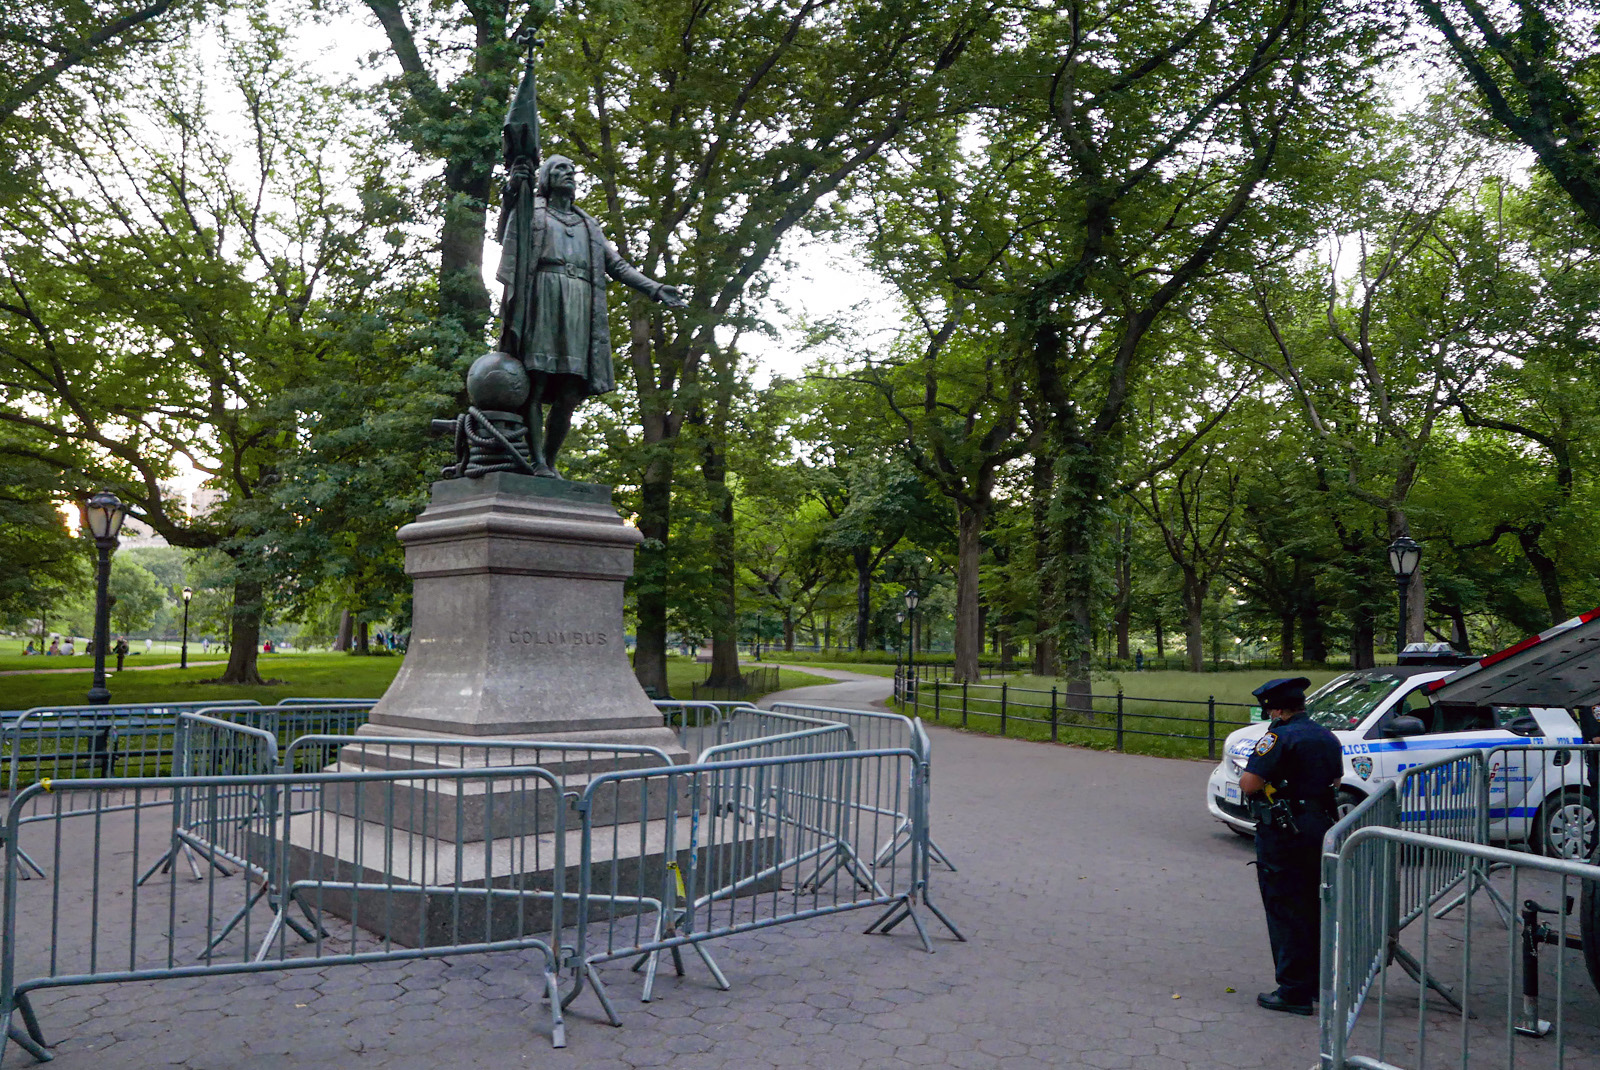 Columbus Statue, The Mall, Central Park.